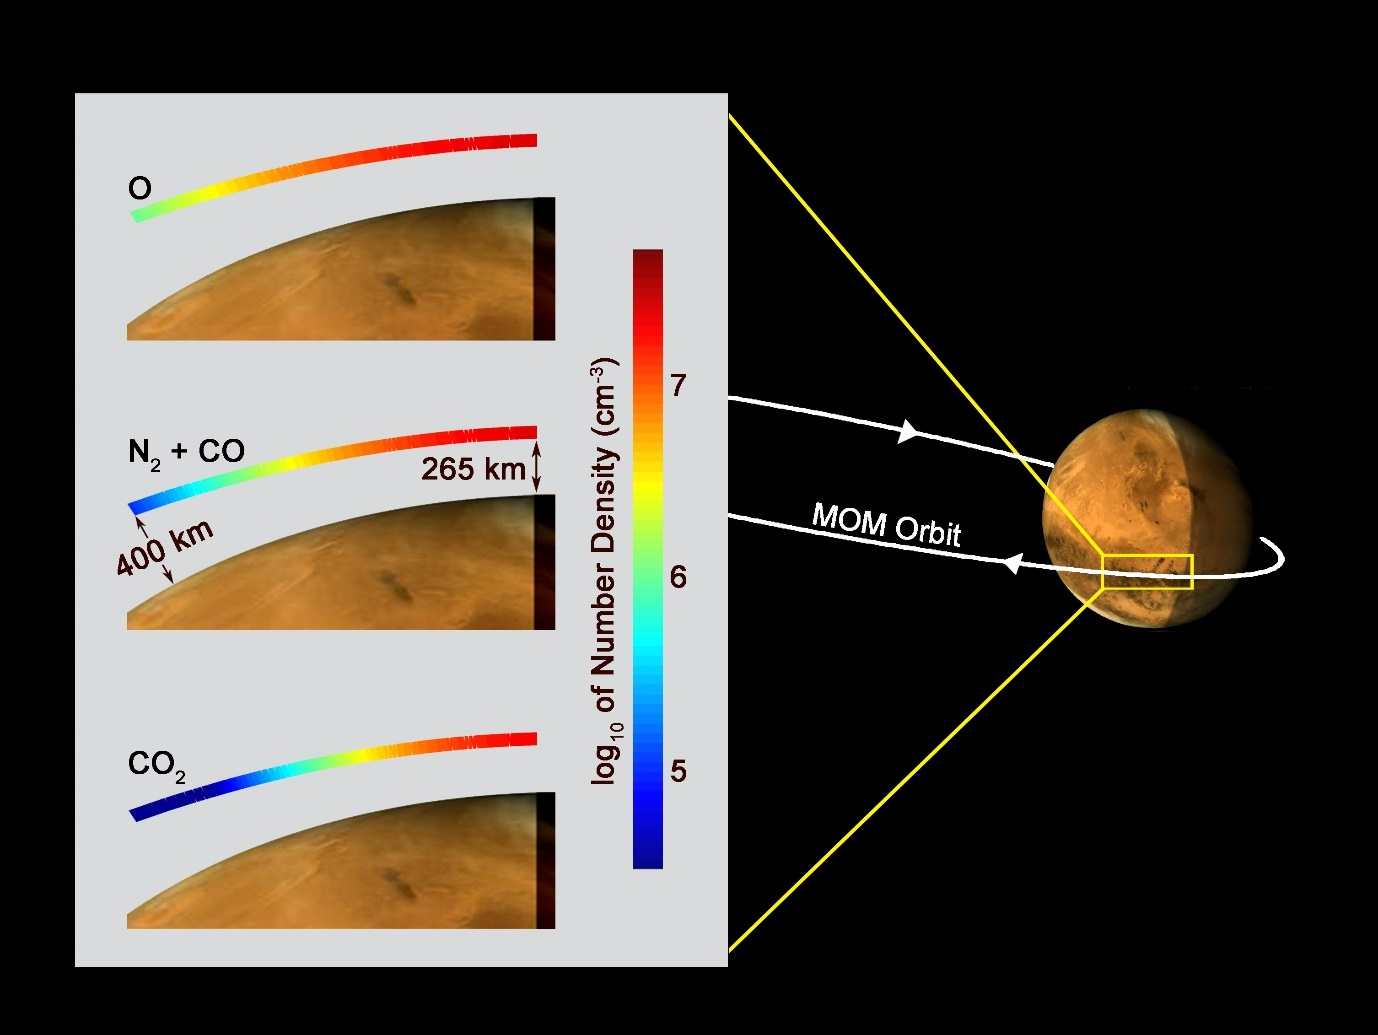 Fig.1:  Distribution of the major species in the Martian exosphere in the local evening sector measured by MENCA in December 2014